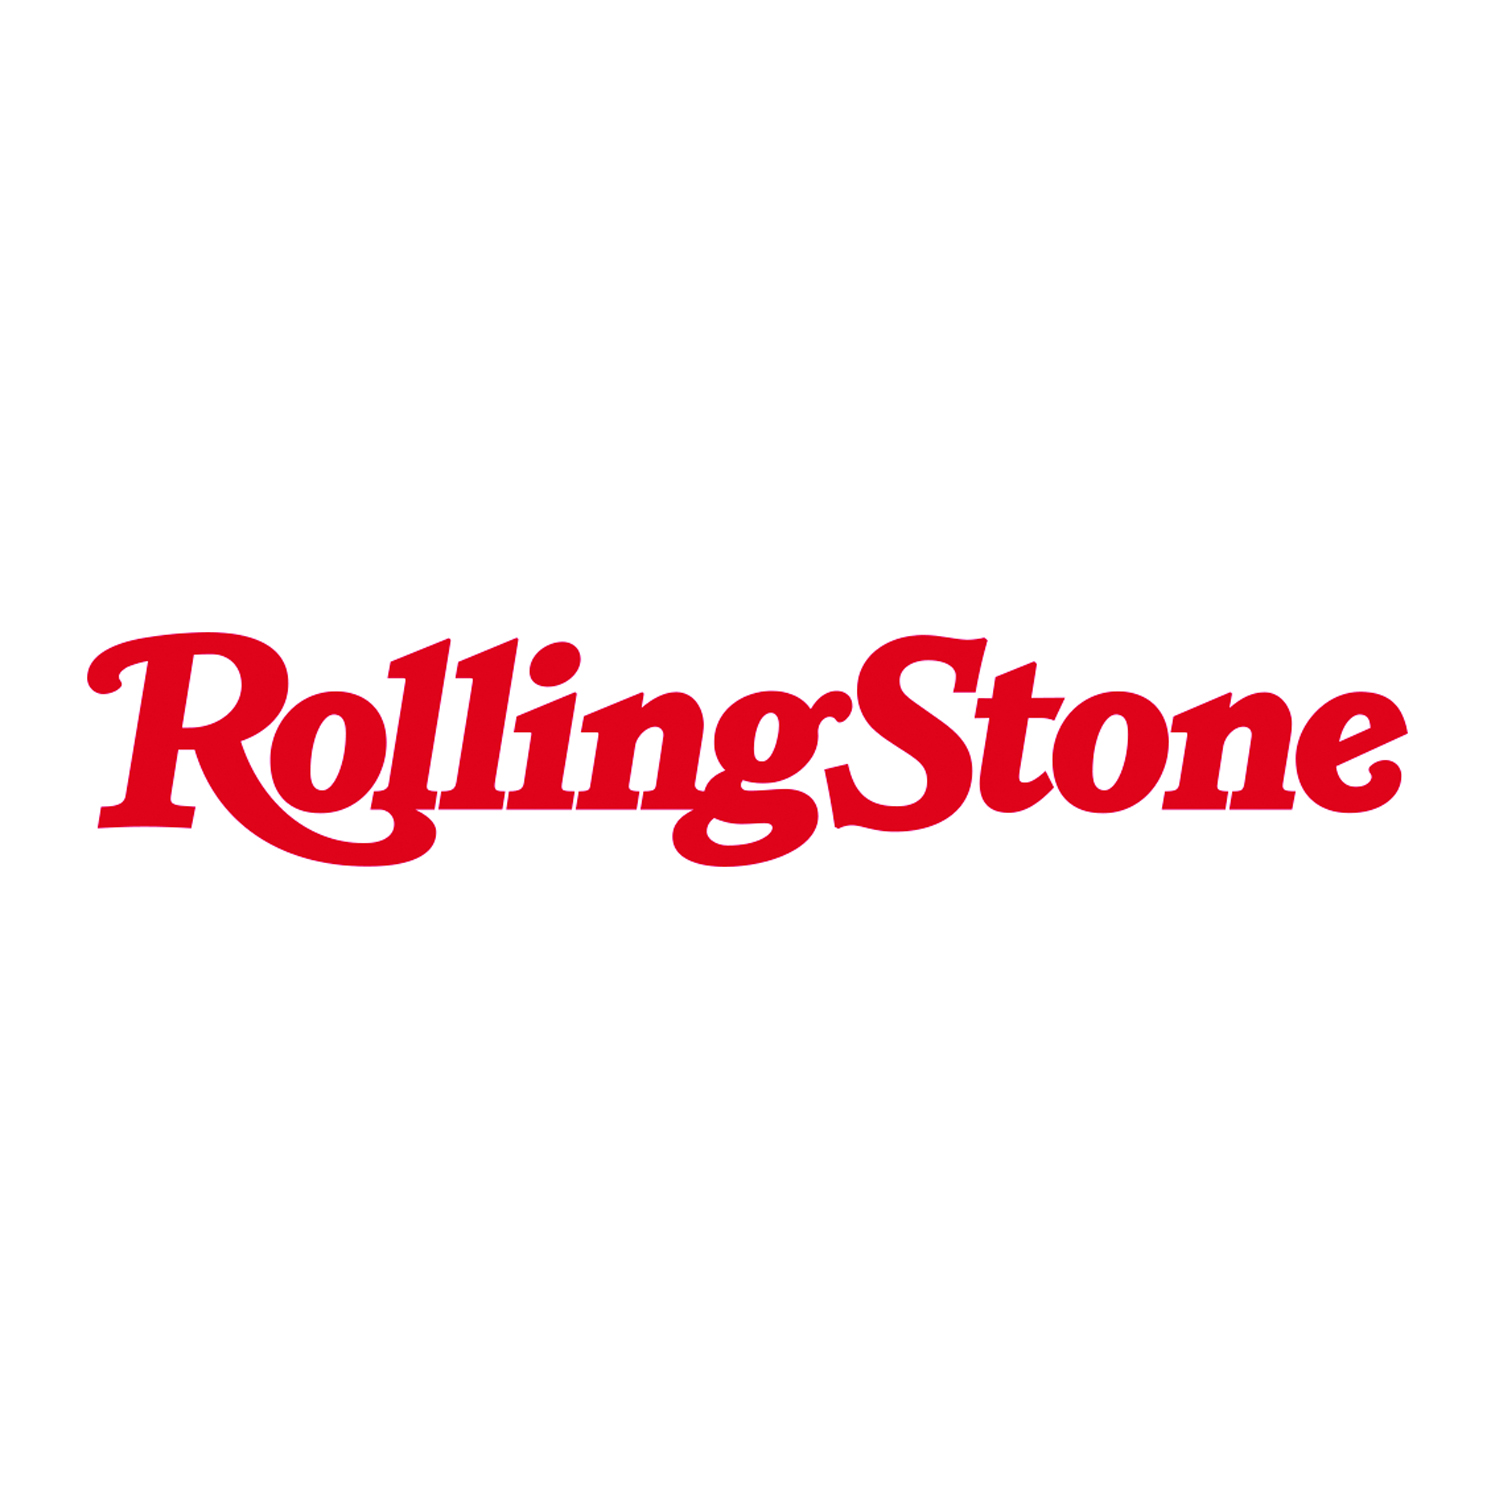 Rolling_Stone_Cover.jpg